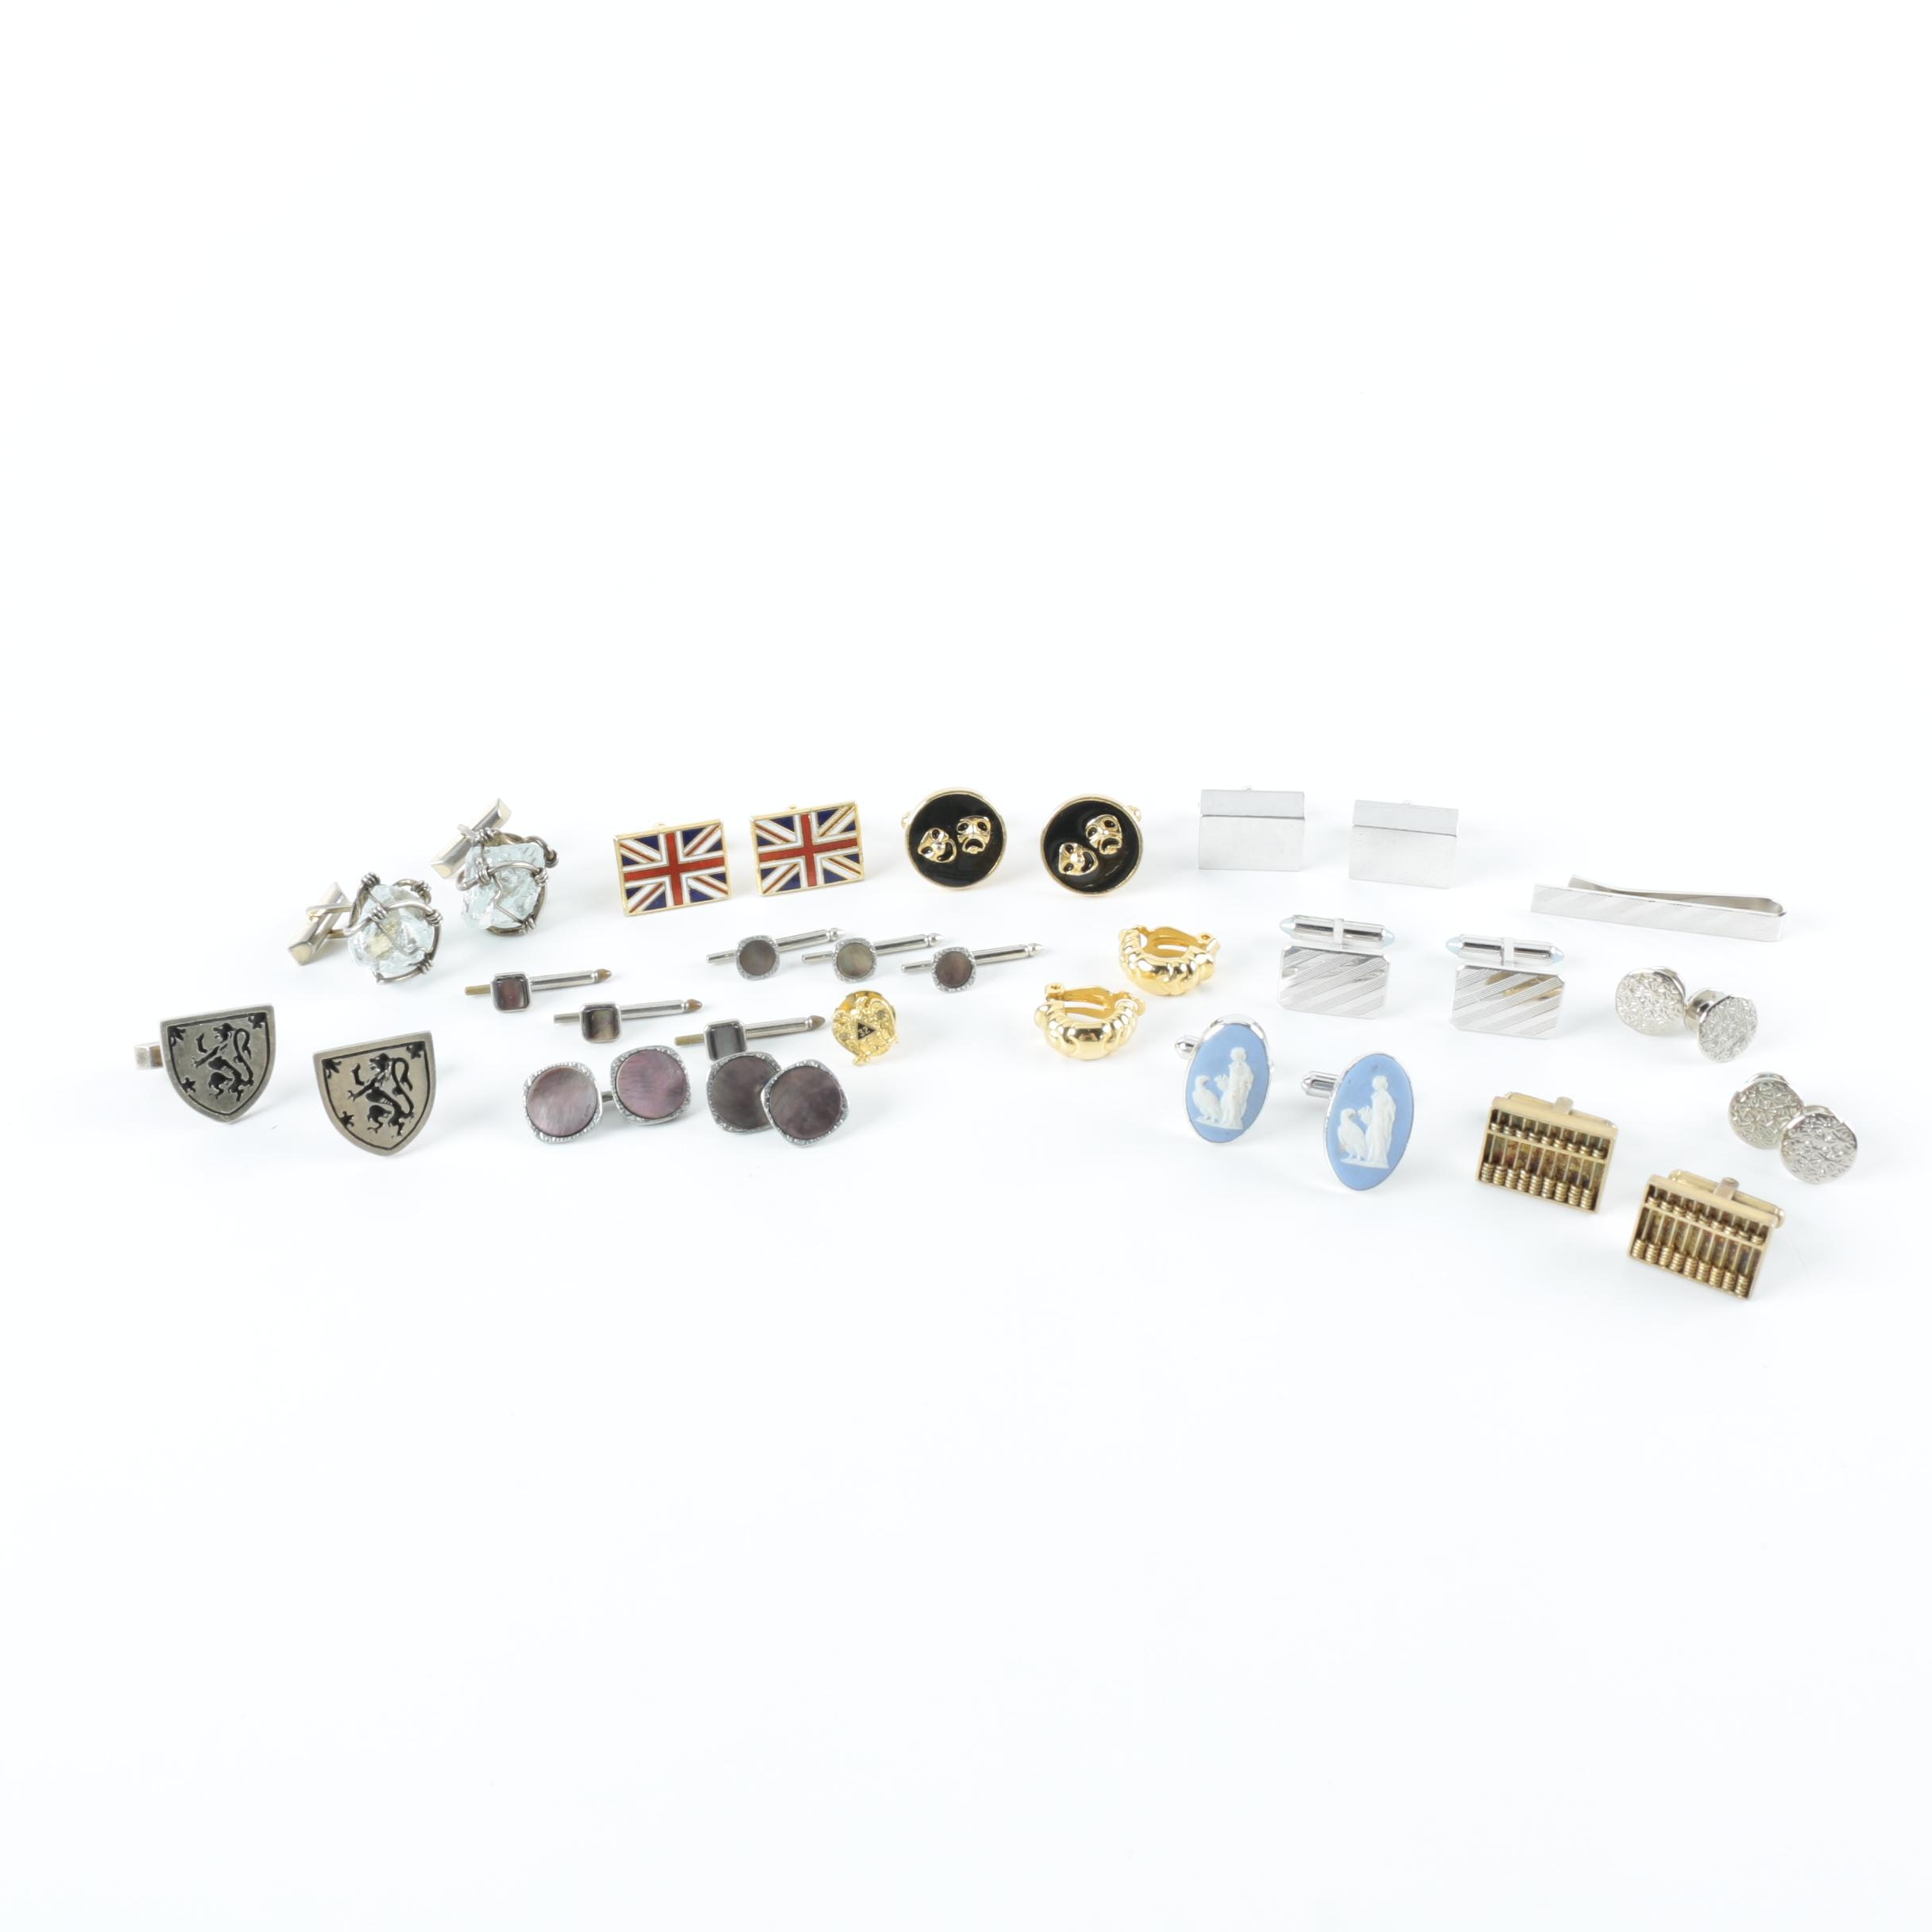 Collection of Cufflinks and Other Jewelry Including Sterling Silver